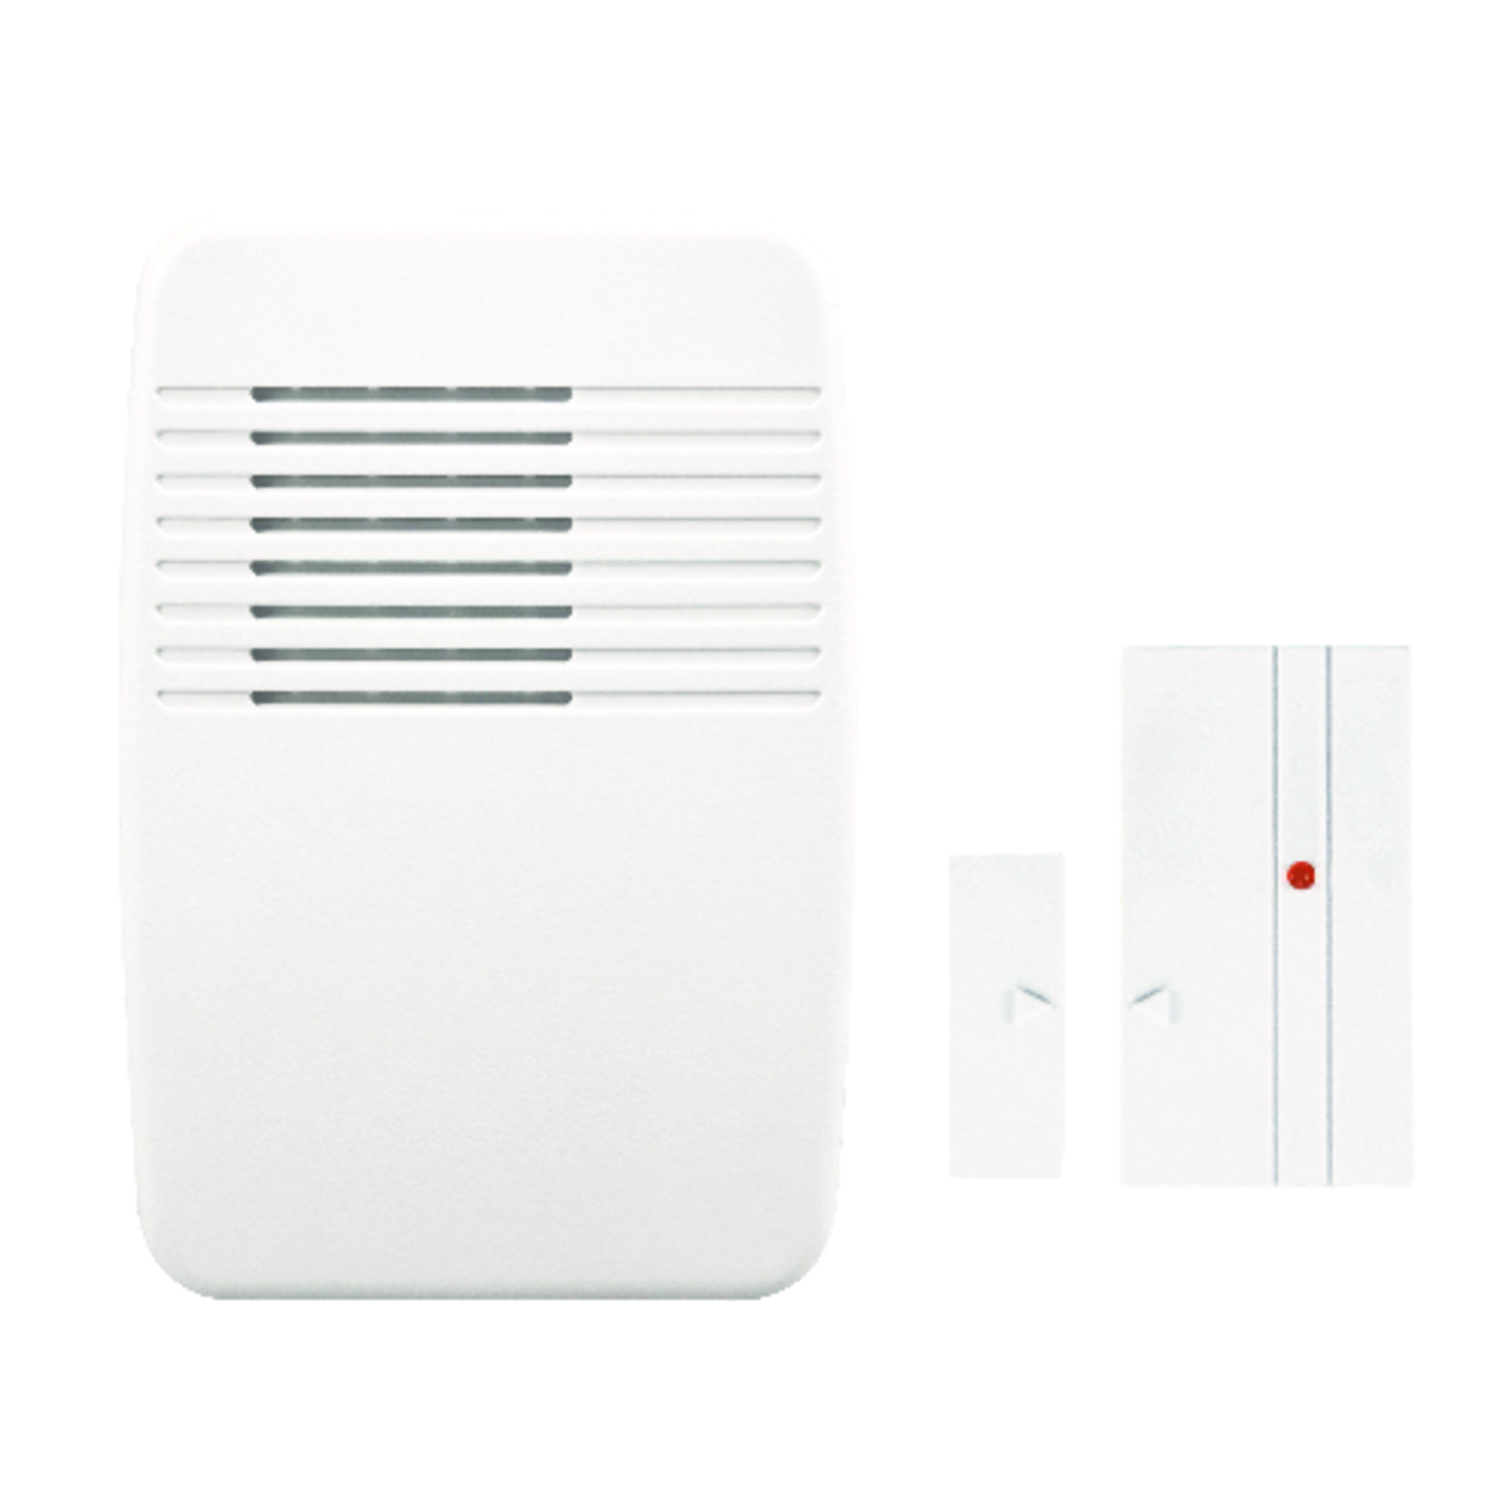 Heath Zenith  White  Personal Security Alarm